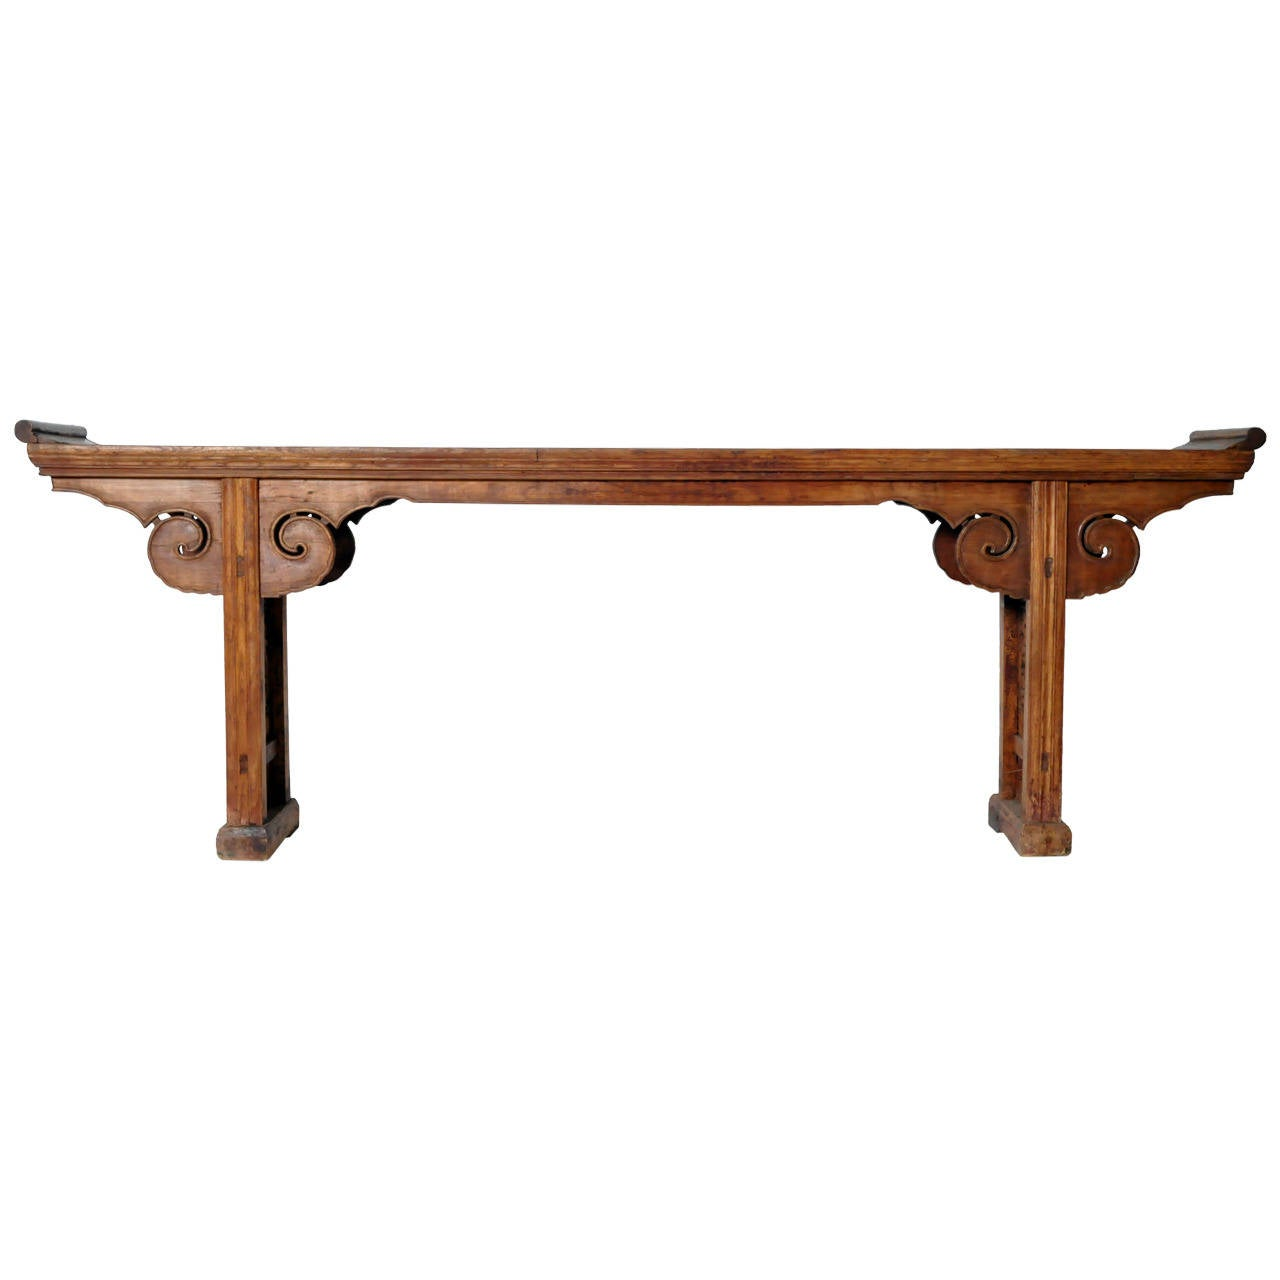 Chinese elm wood altar table at stdibs